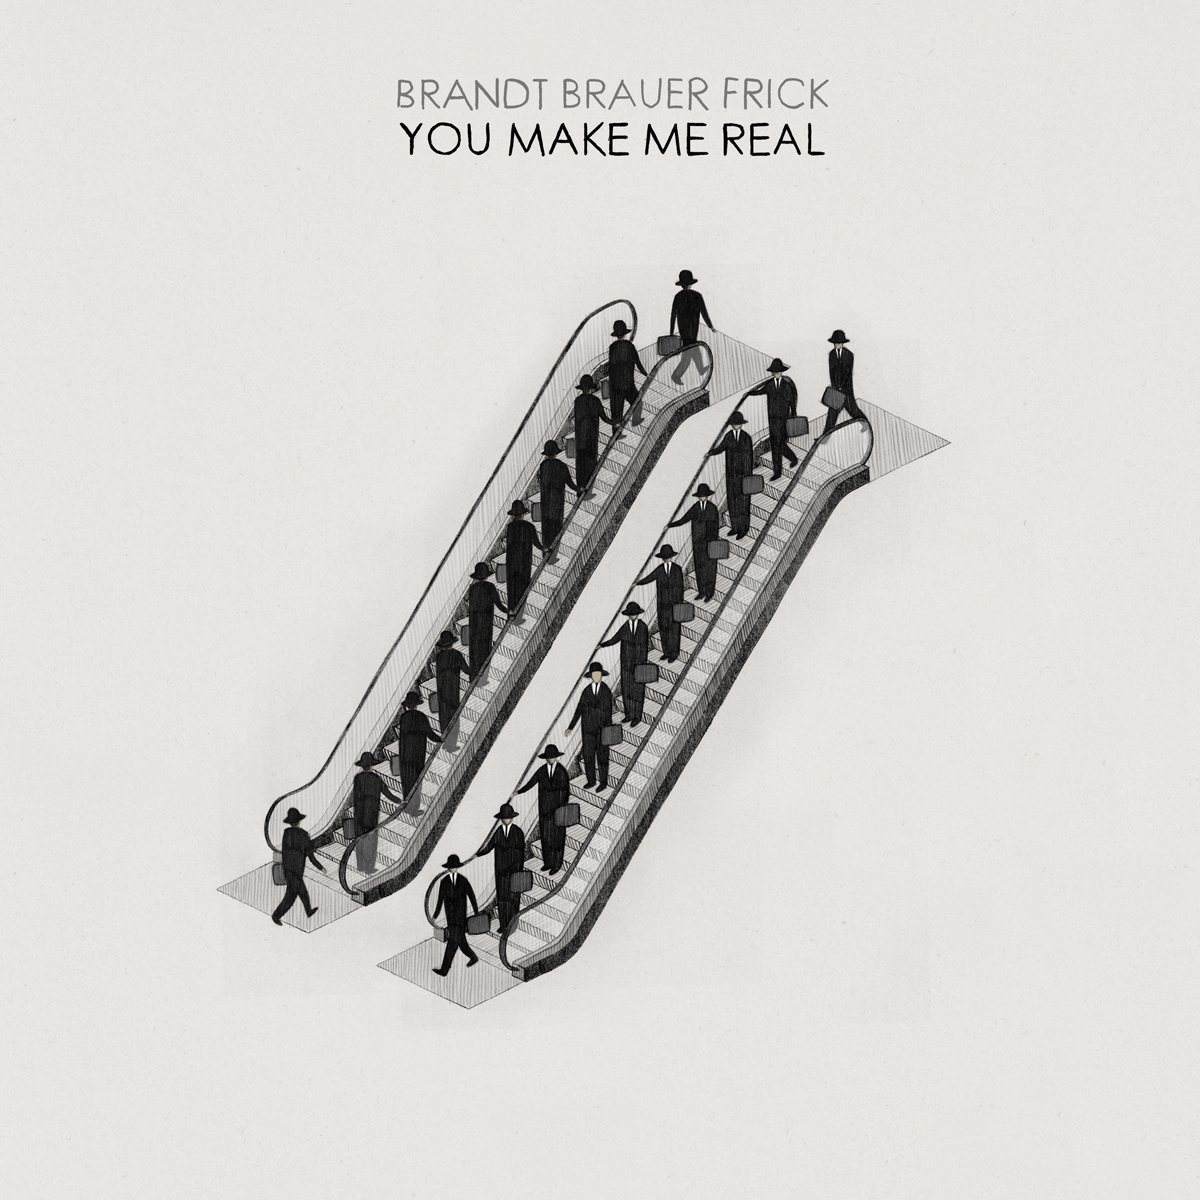 cover illustration you make me real rolltreppe by danae diaz